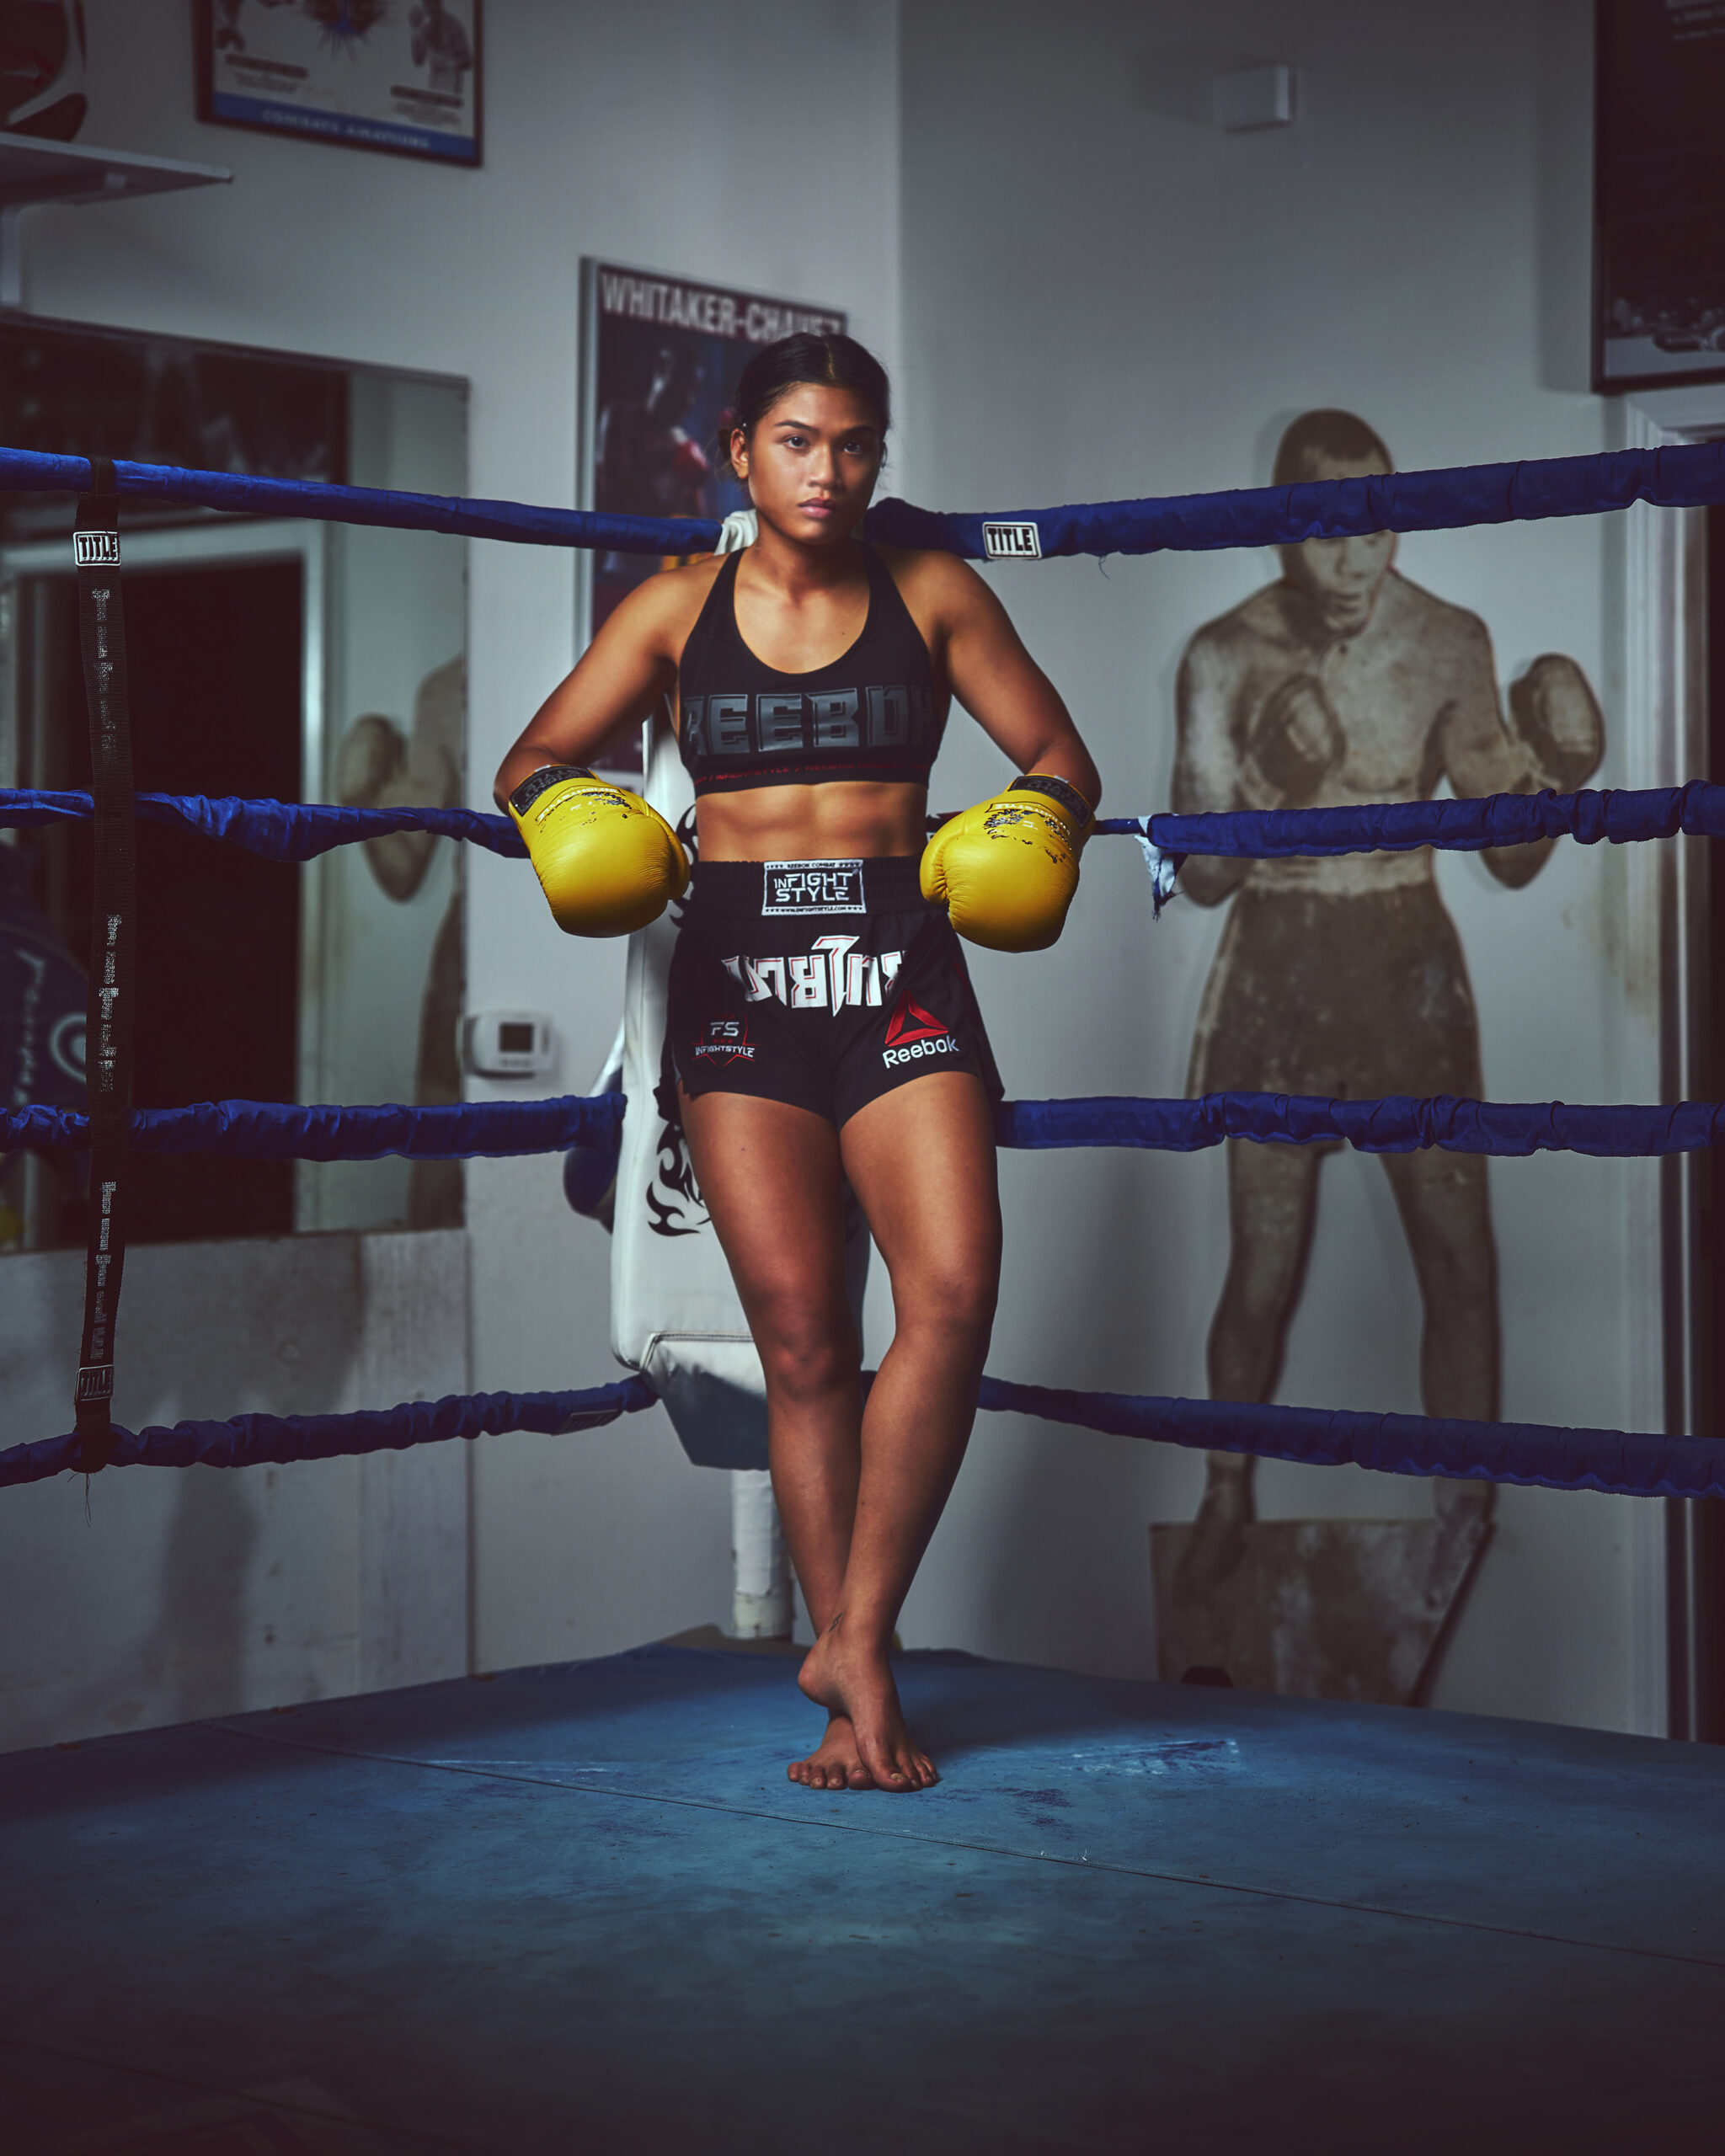 Jeff Dojillo photographs Jackie Buntan lounging against the ring in a Reebok sports bra and Inflghtstyle shorts